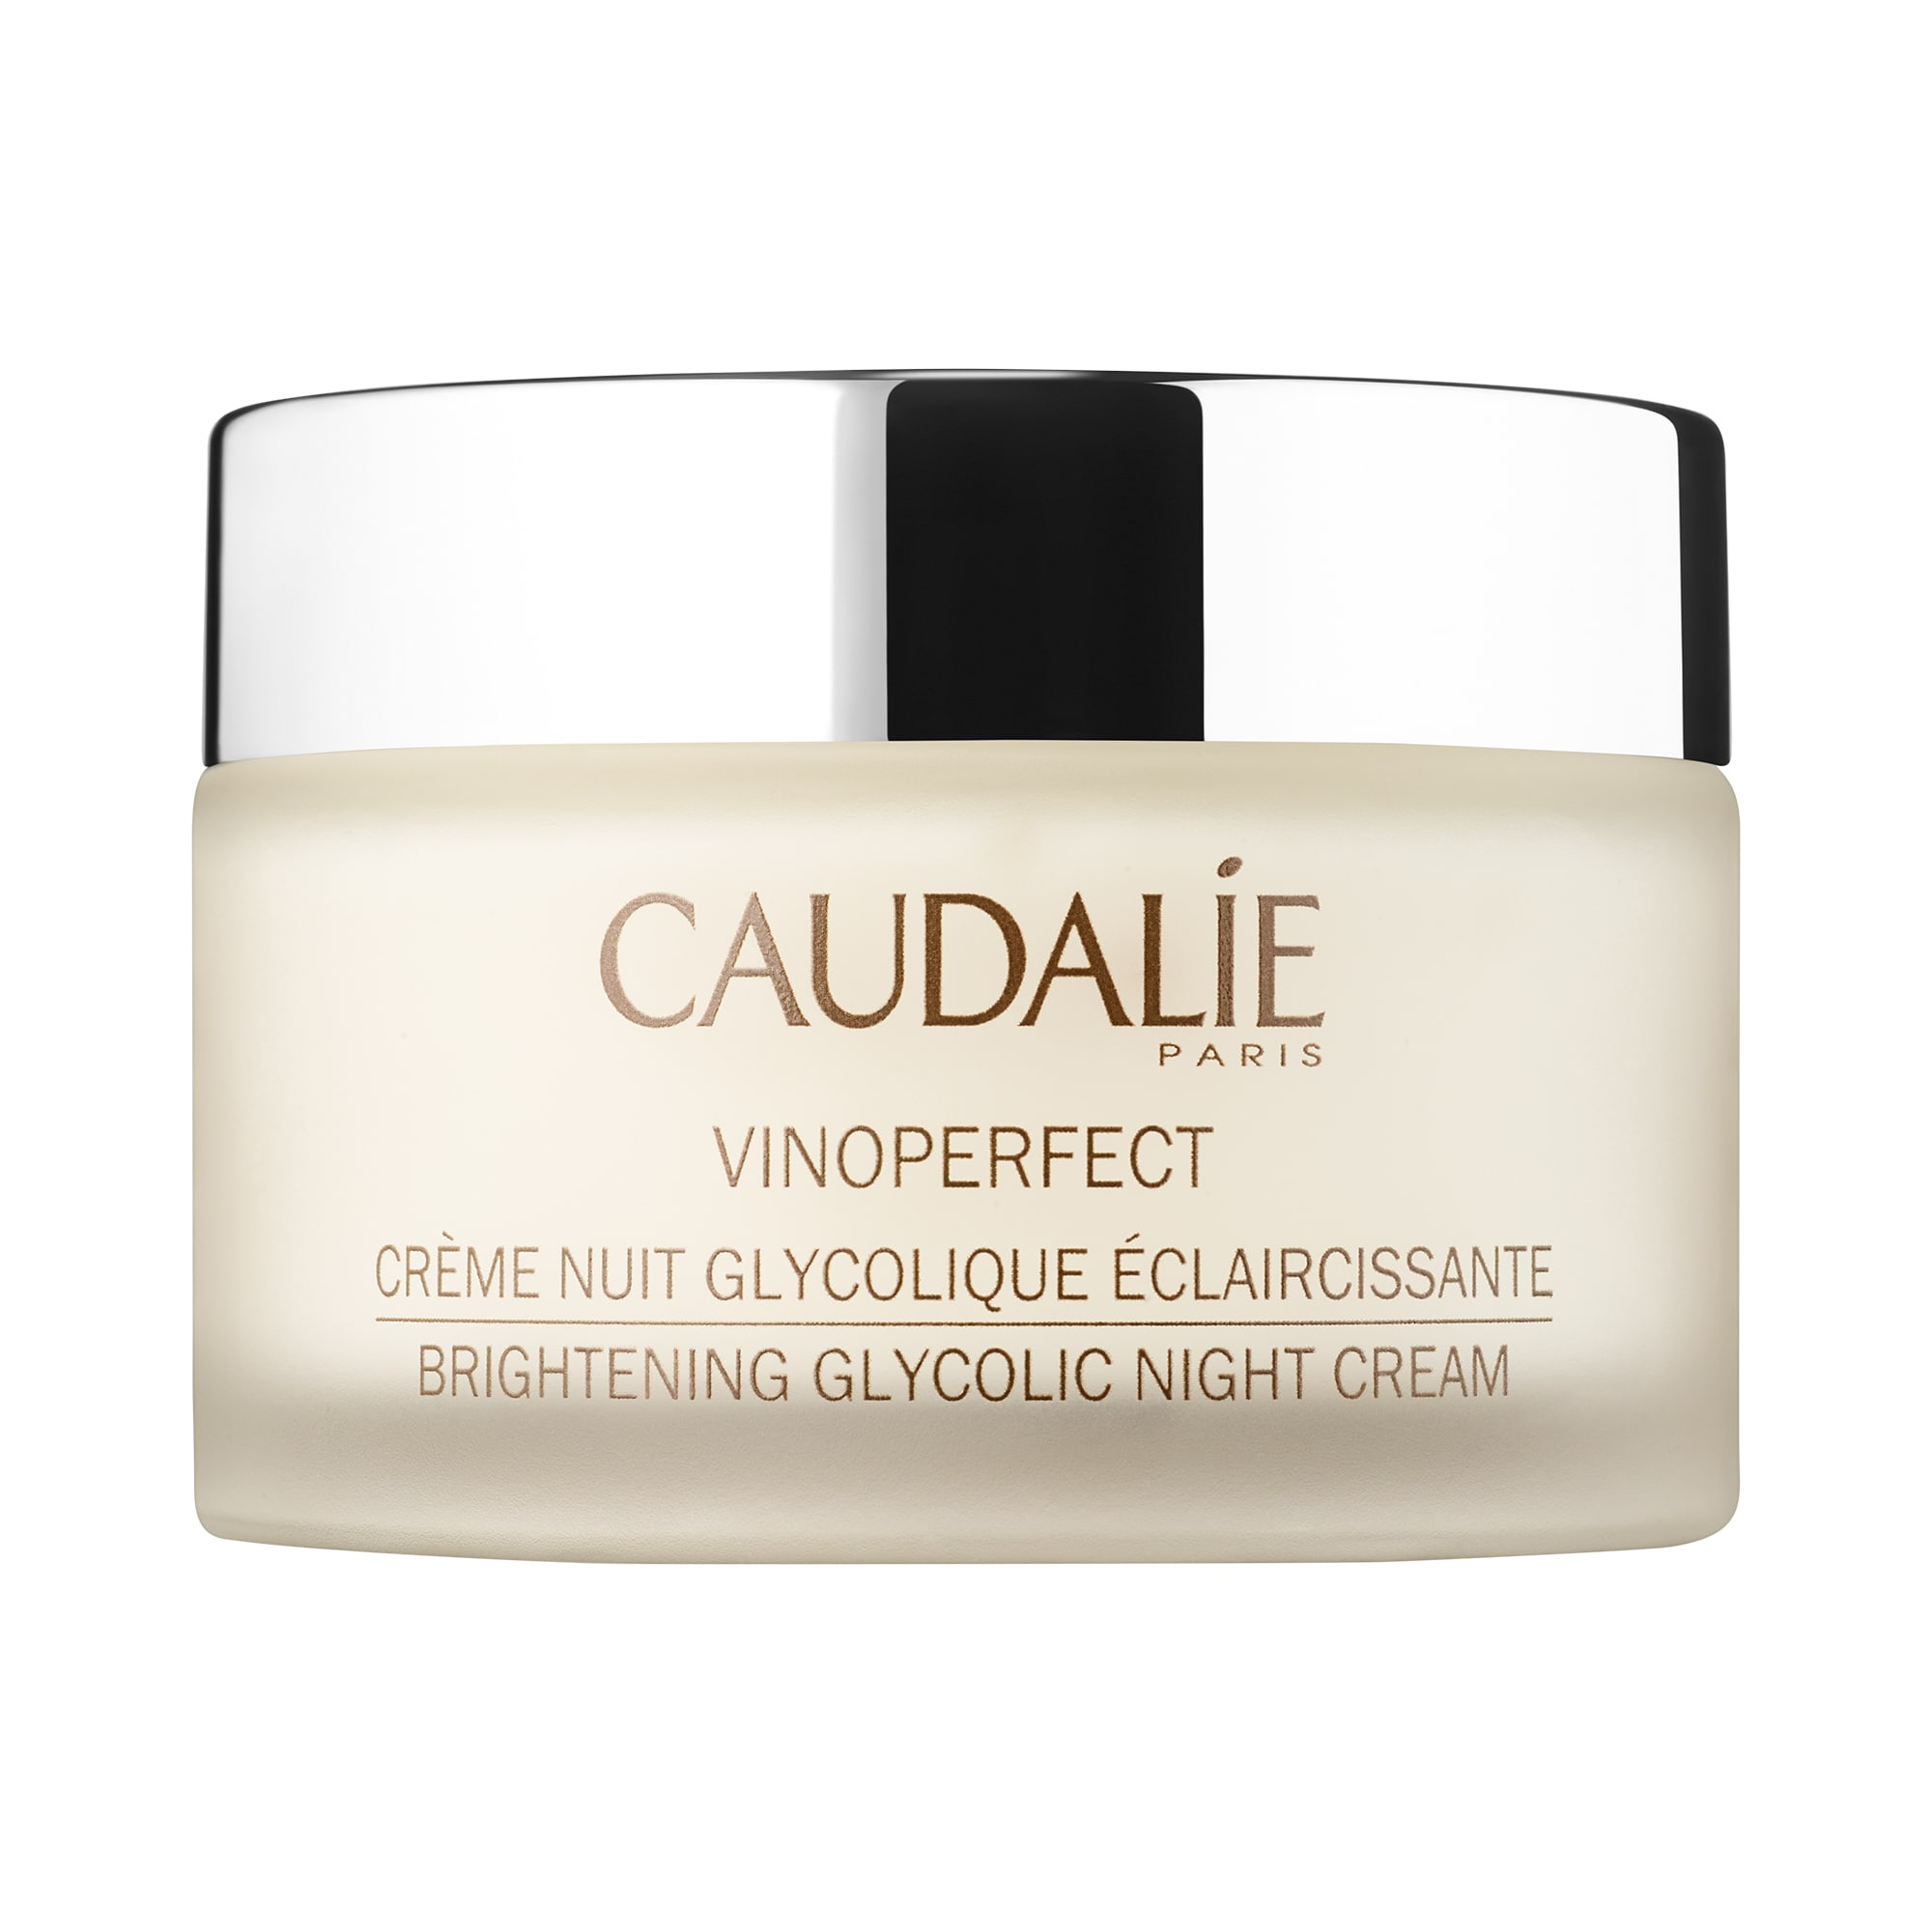 Caudalie - Vinoperfect Brightening Glycolic Overnight Cream